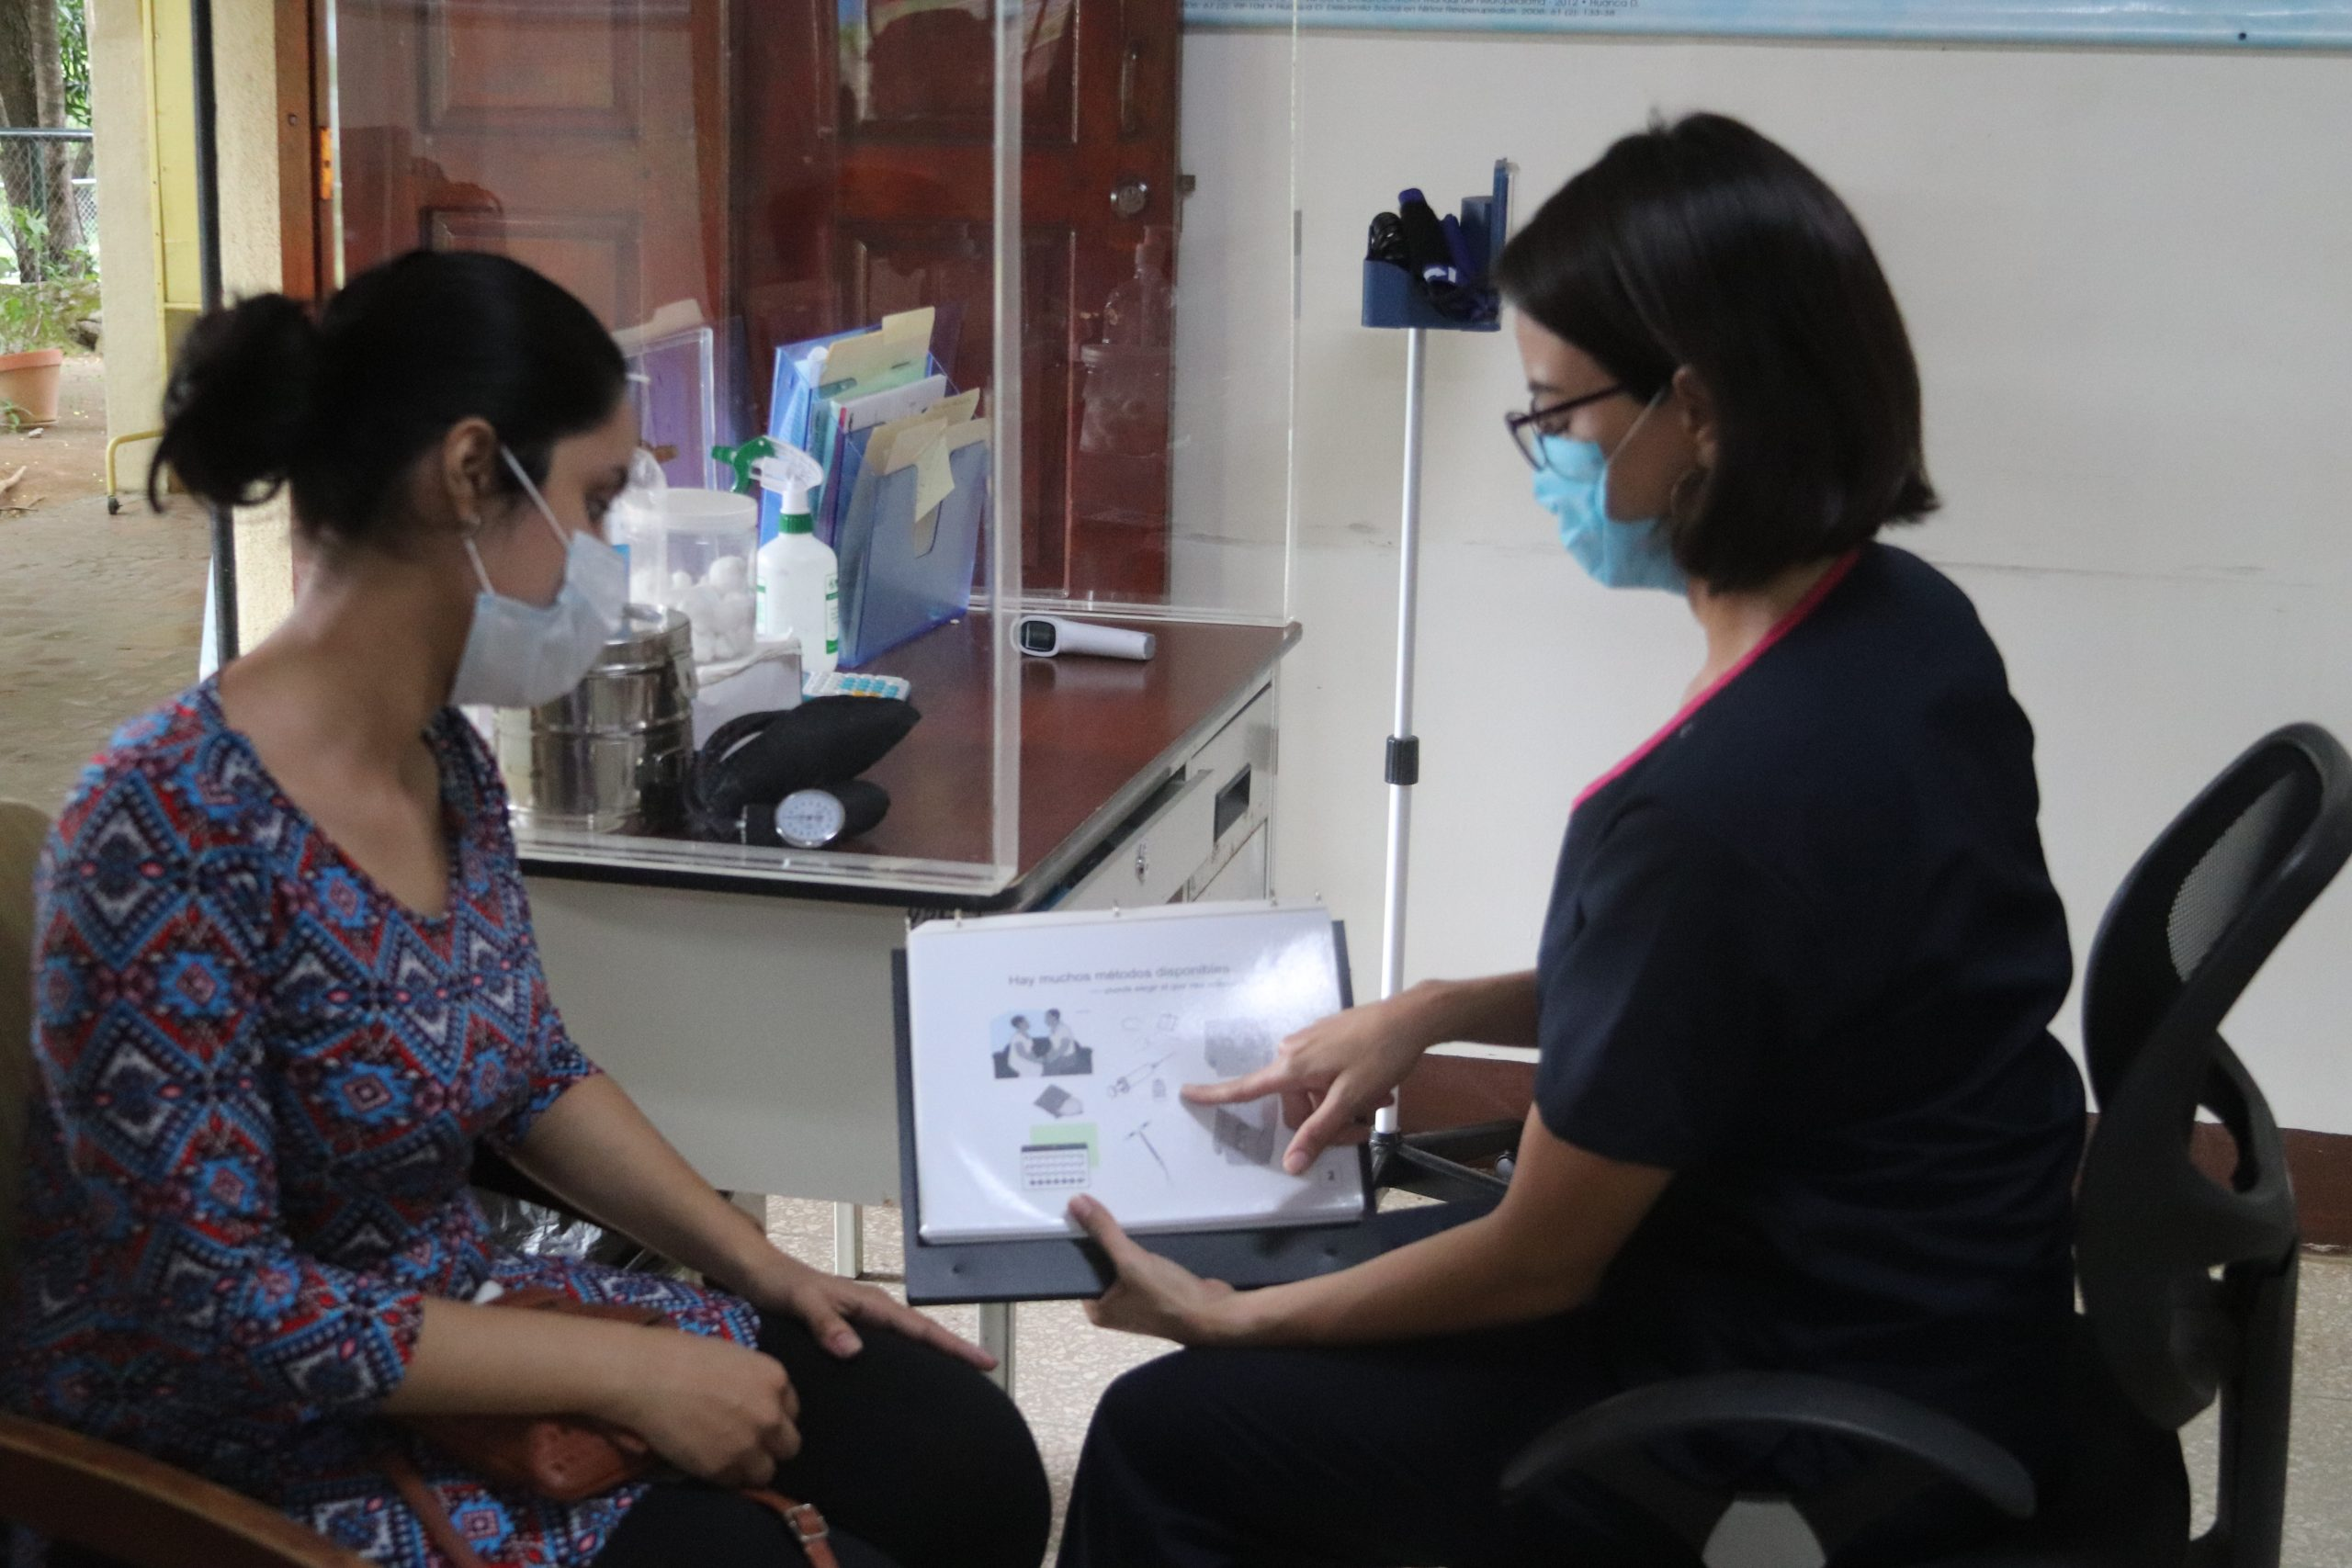 A doctor shows family planning methods in a training book to a patient.